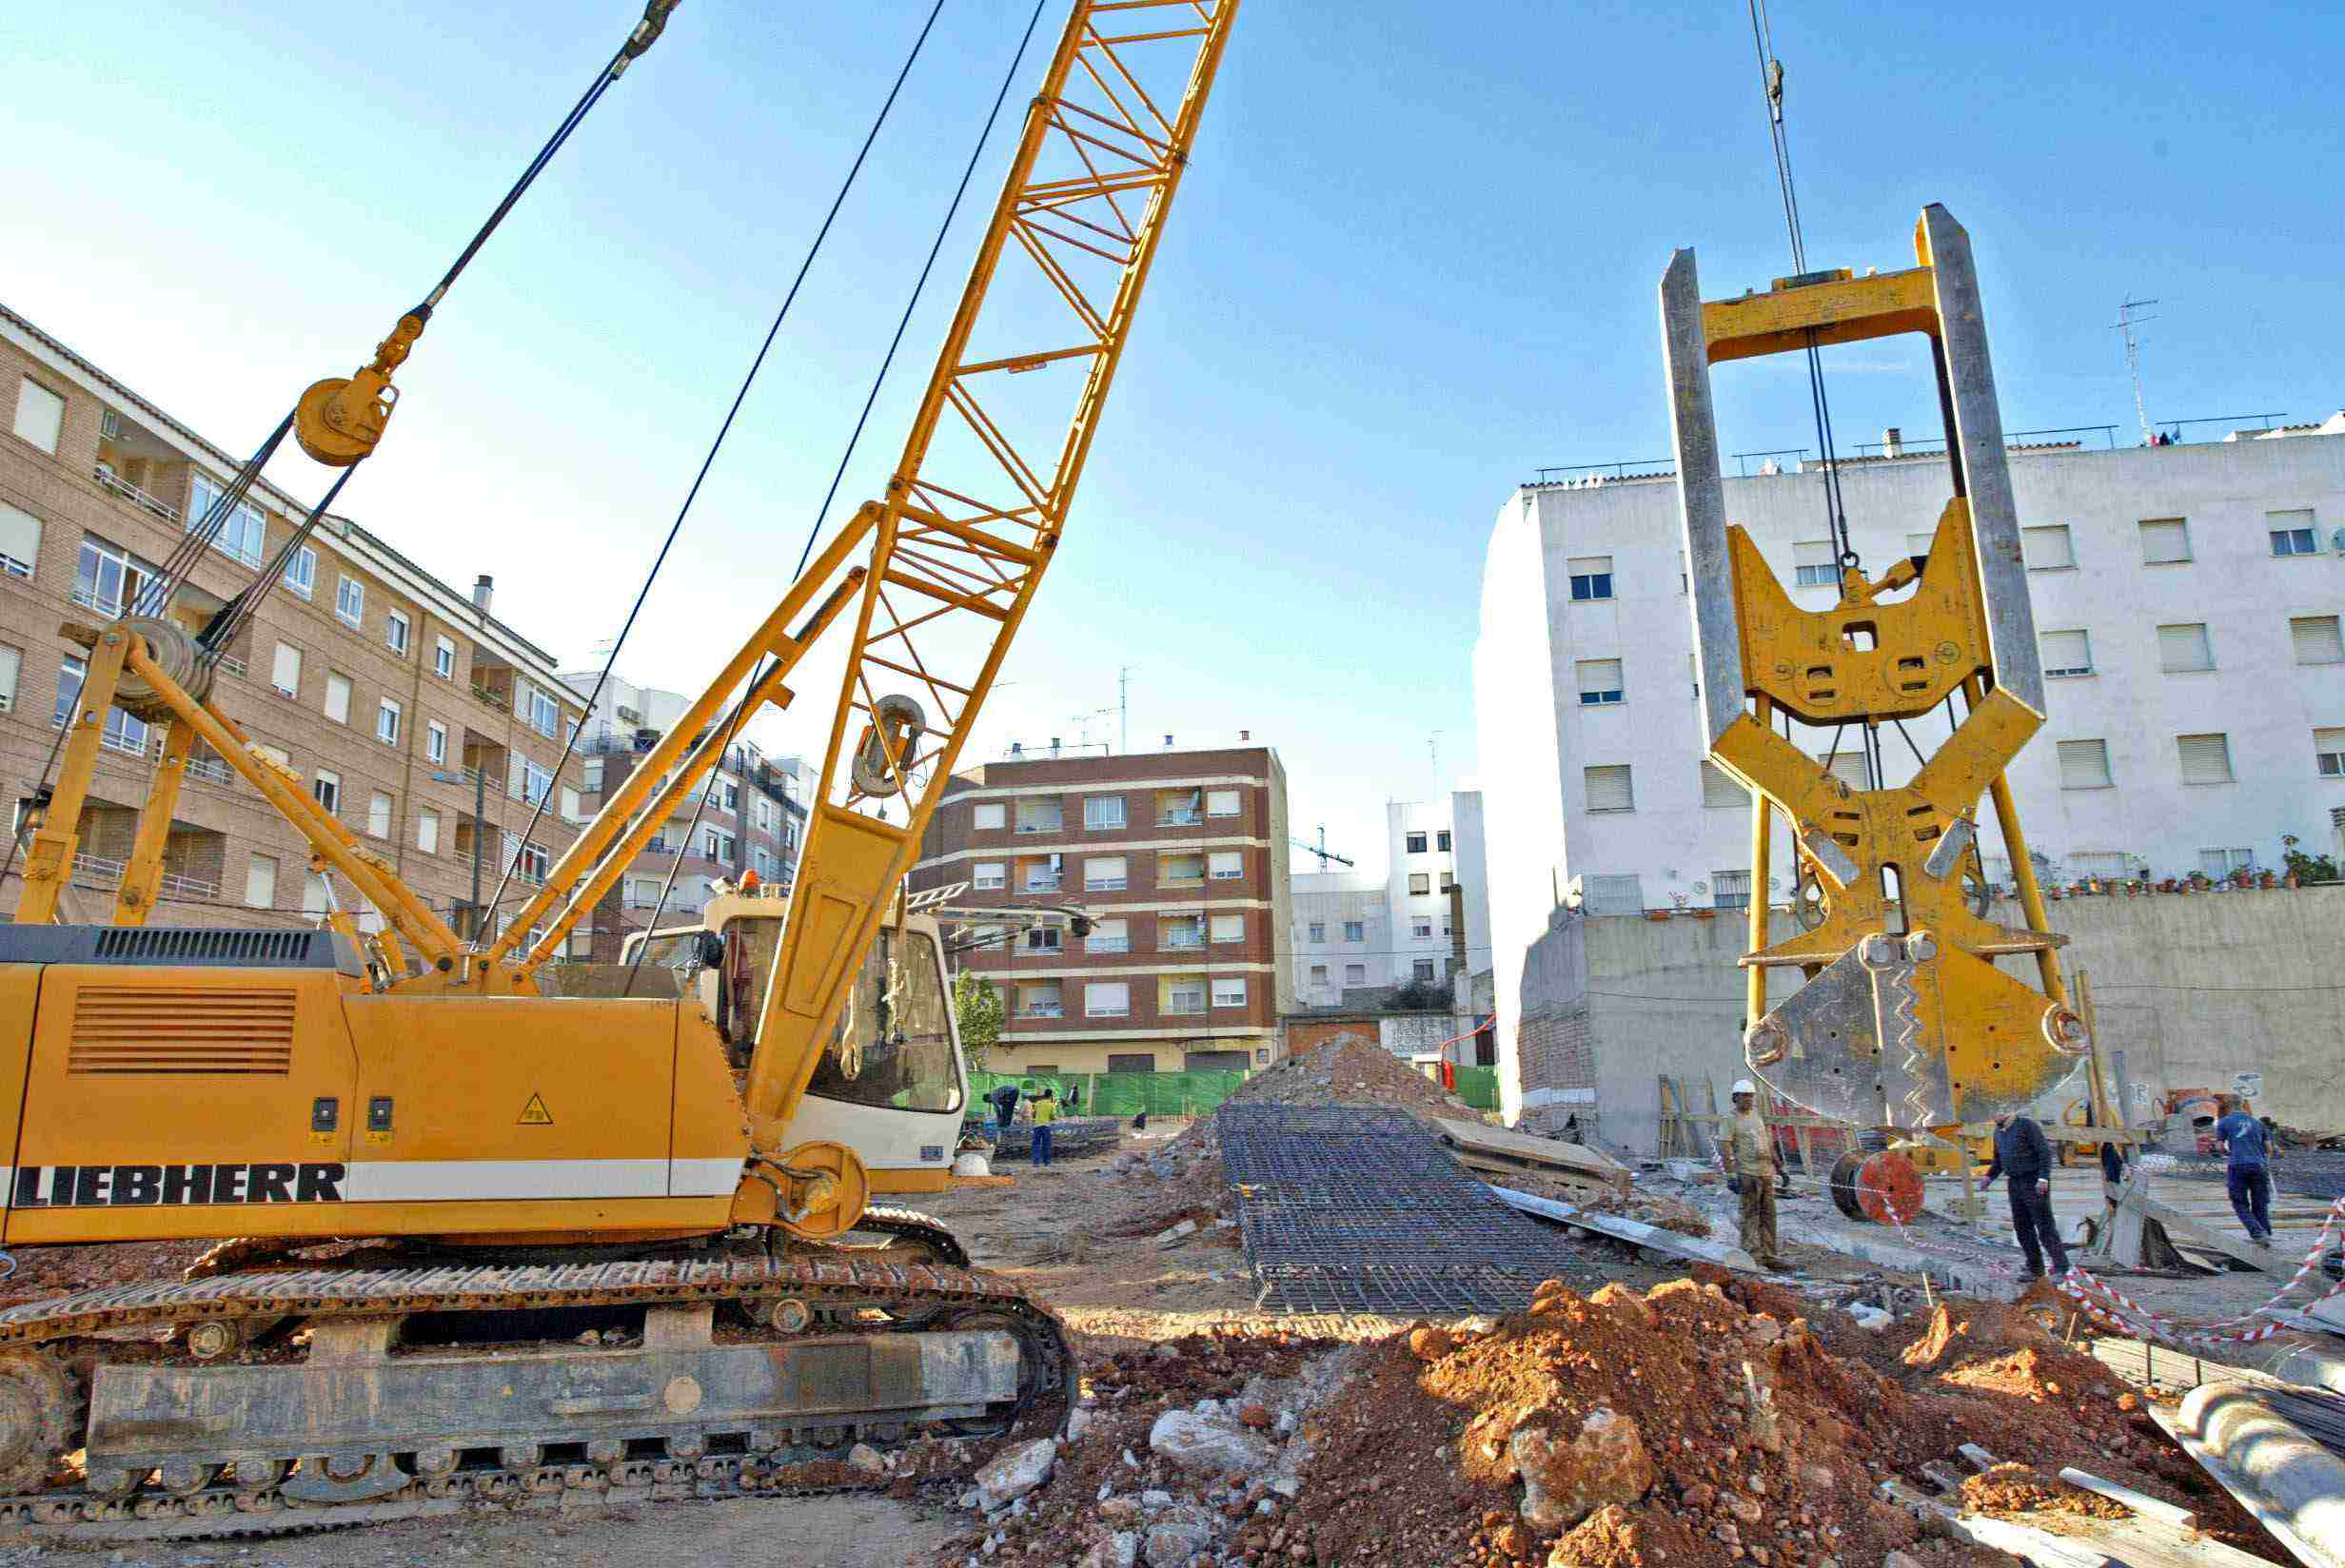 Used Liebherr HS833HD (1997) for rent and sale